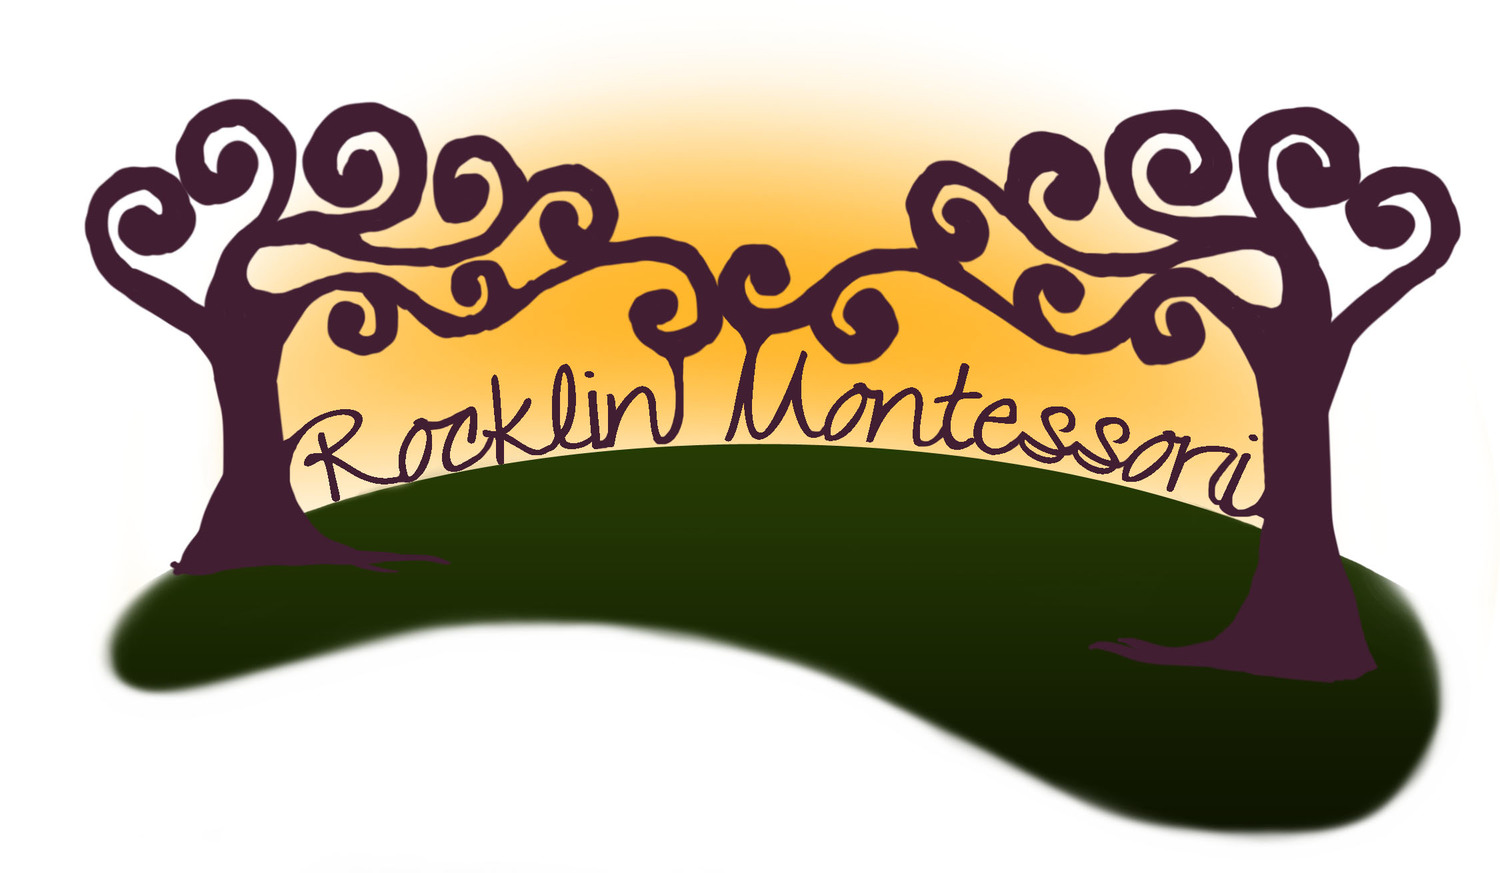 Rocklin Montessori